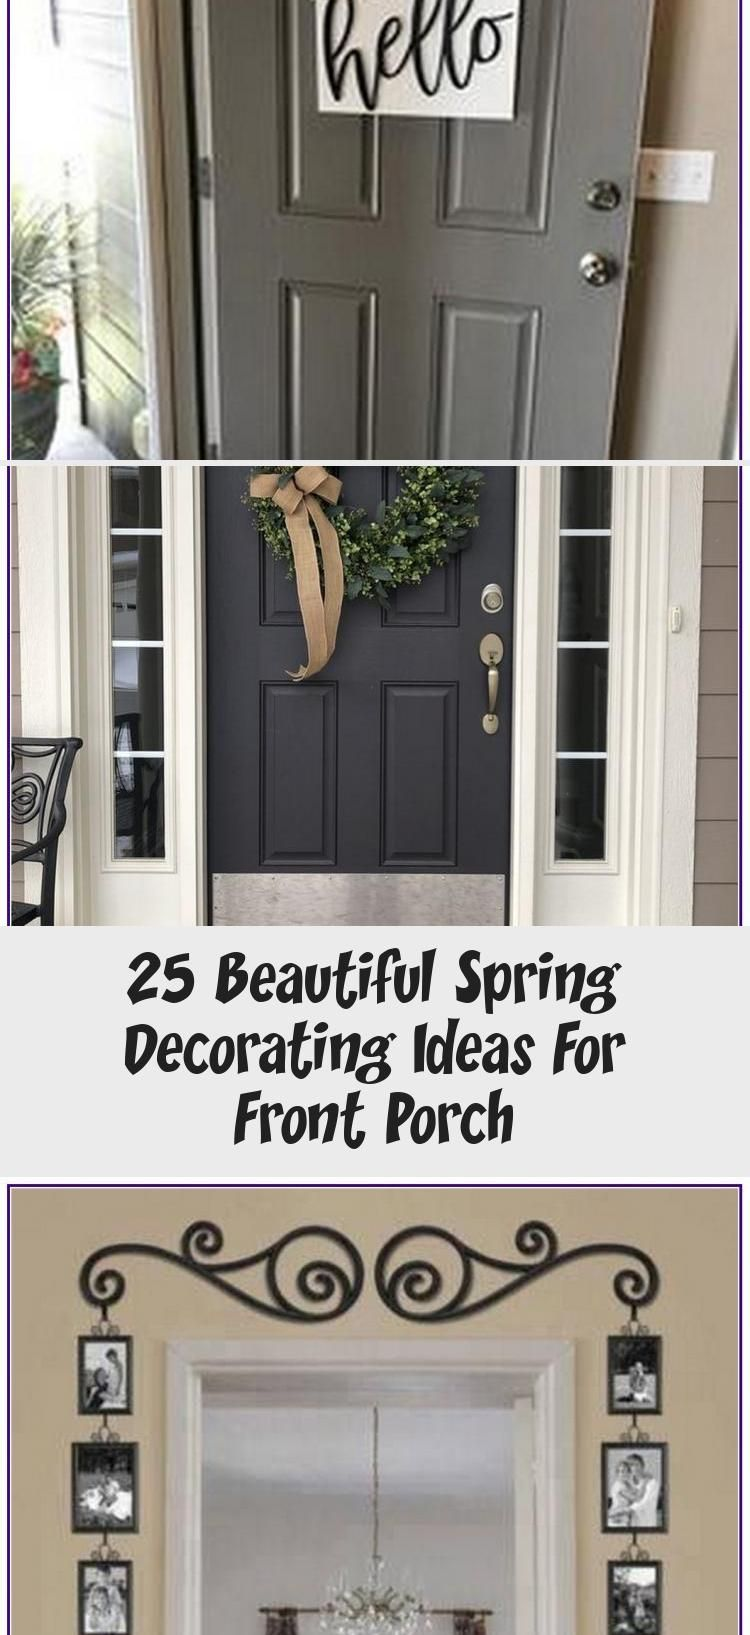 25 BEAUTIFUL SPRING DECORATING IDEAS FOR FRONT PORCH AUX